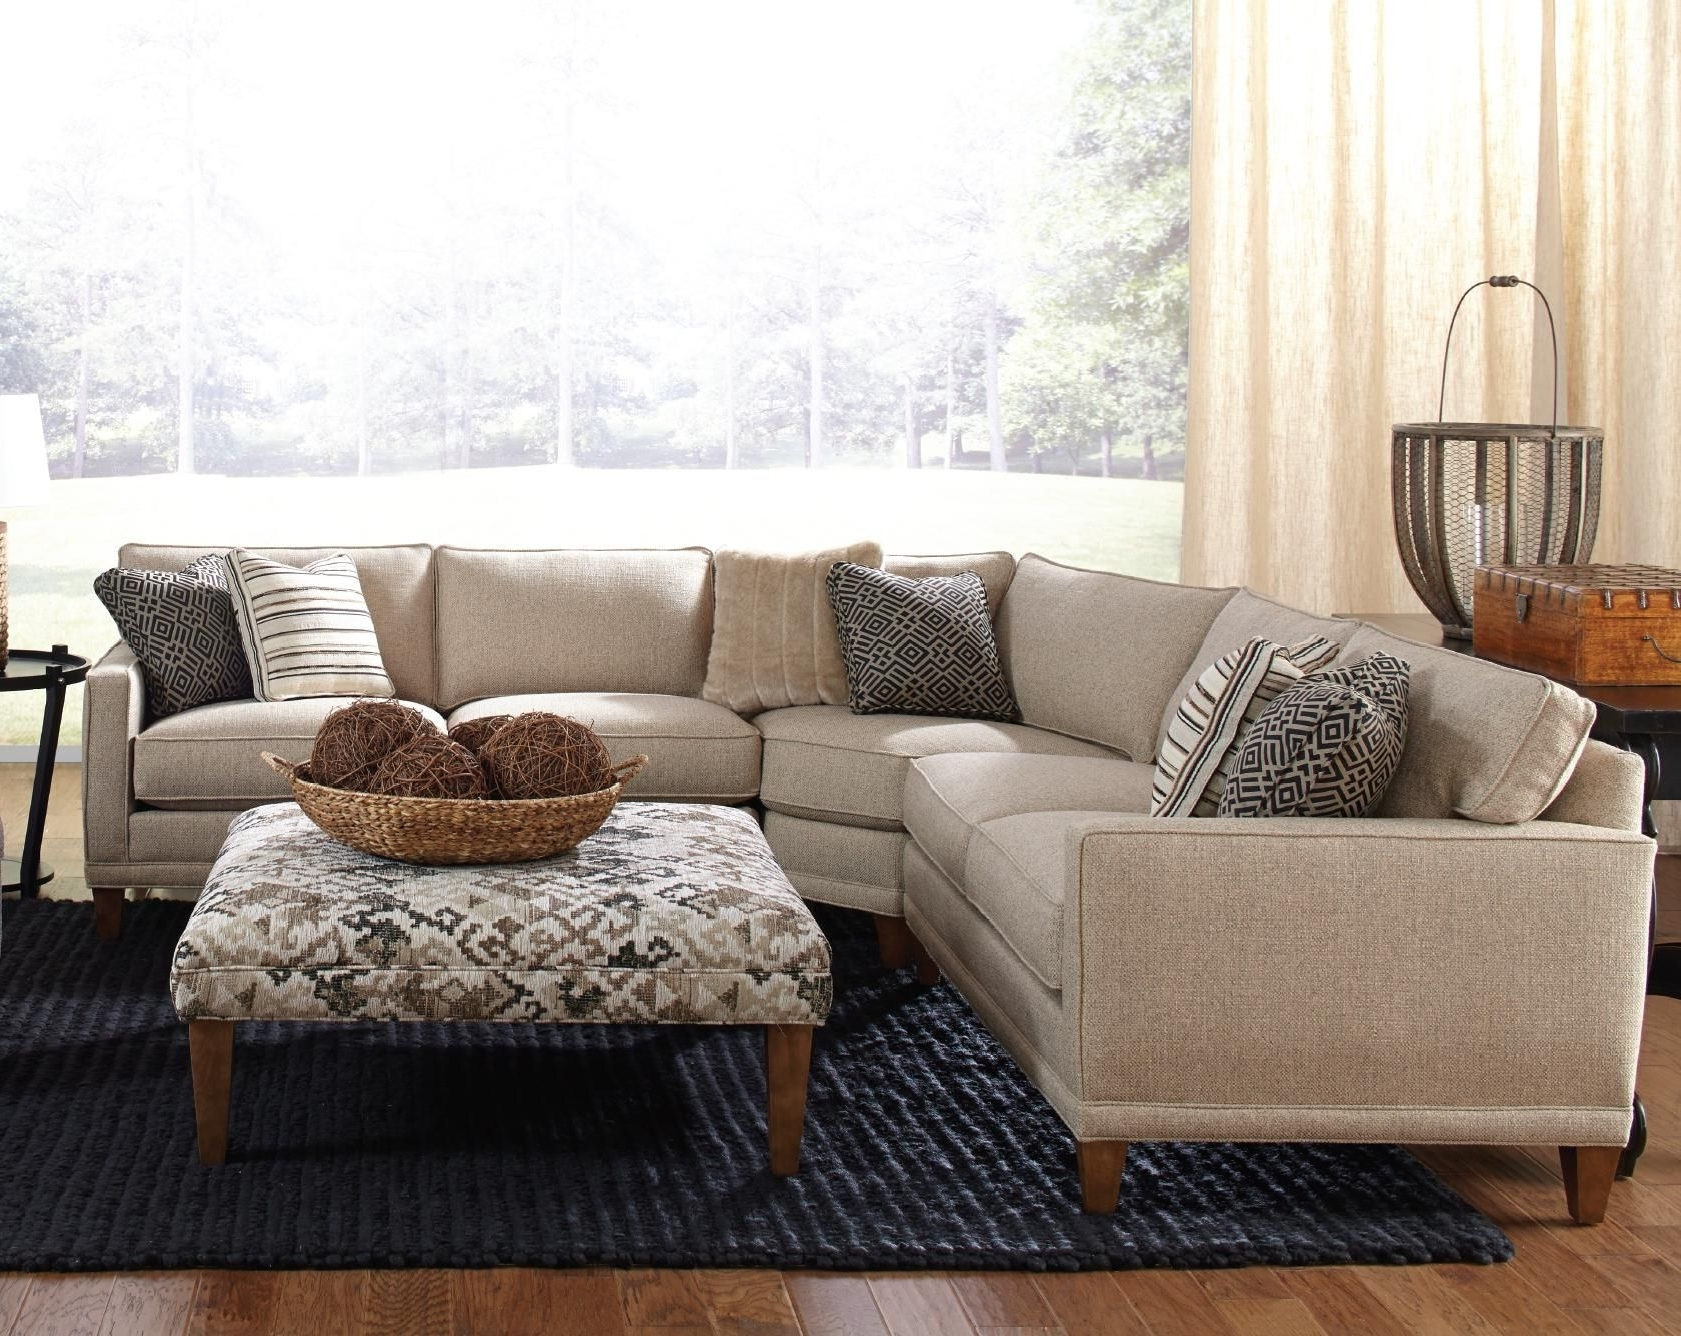 Rowe Townsend Contemporary 3 Piece Sectional Sofa – Sprintz Within Newest Little Rock Ar Sectional Sofas (View 19 of 20)